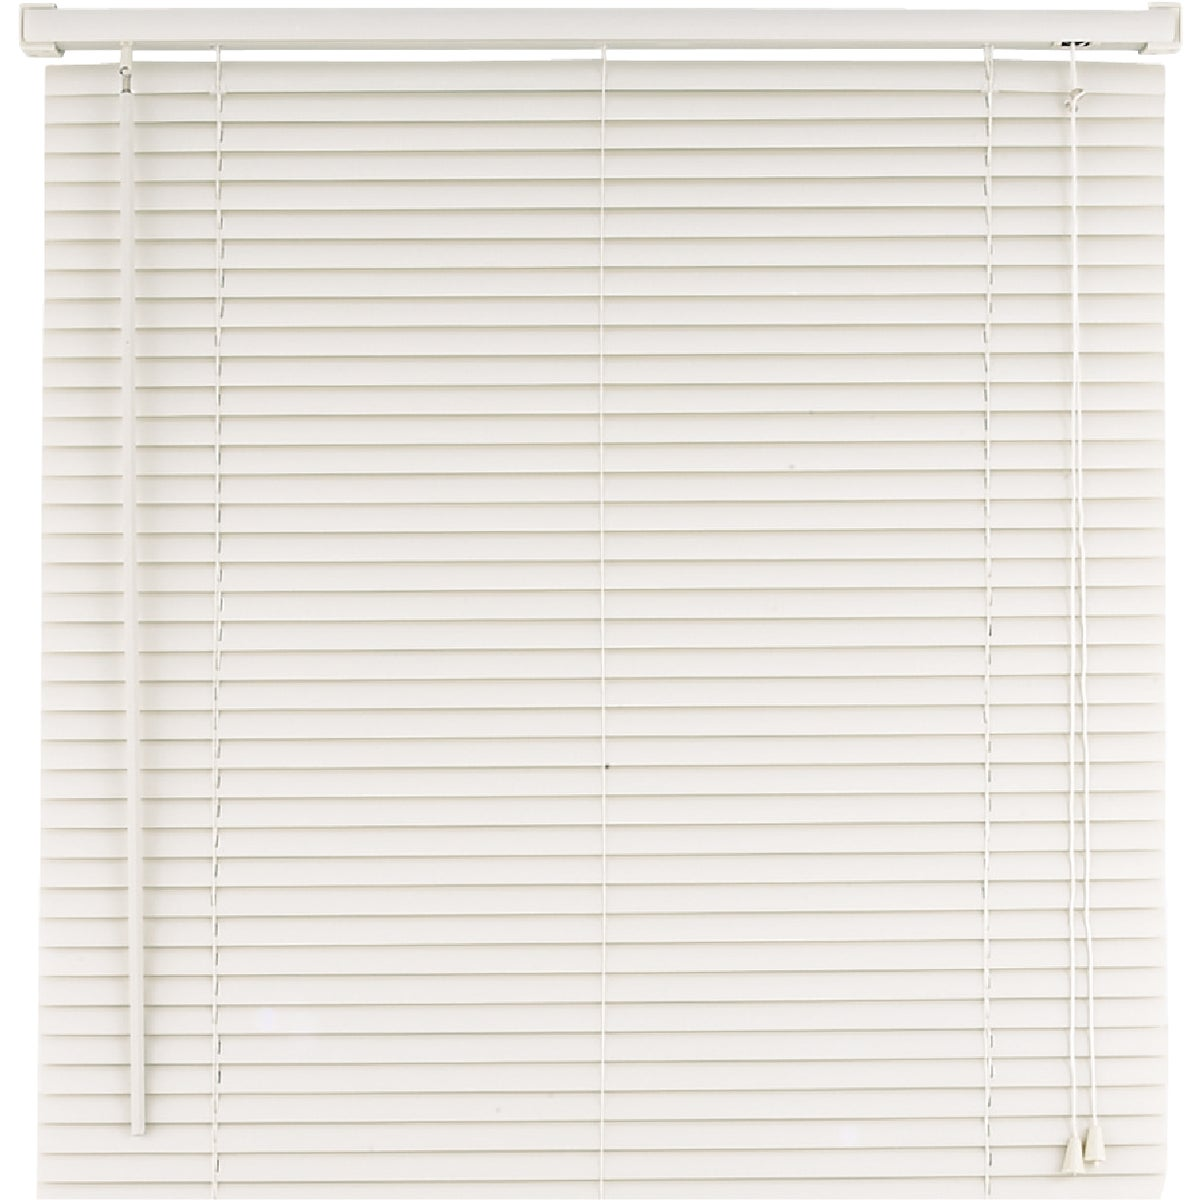 31X64 WHITE BLIND - 15038 by Lotus Wind Incom